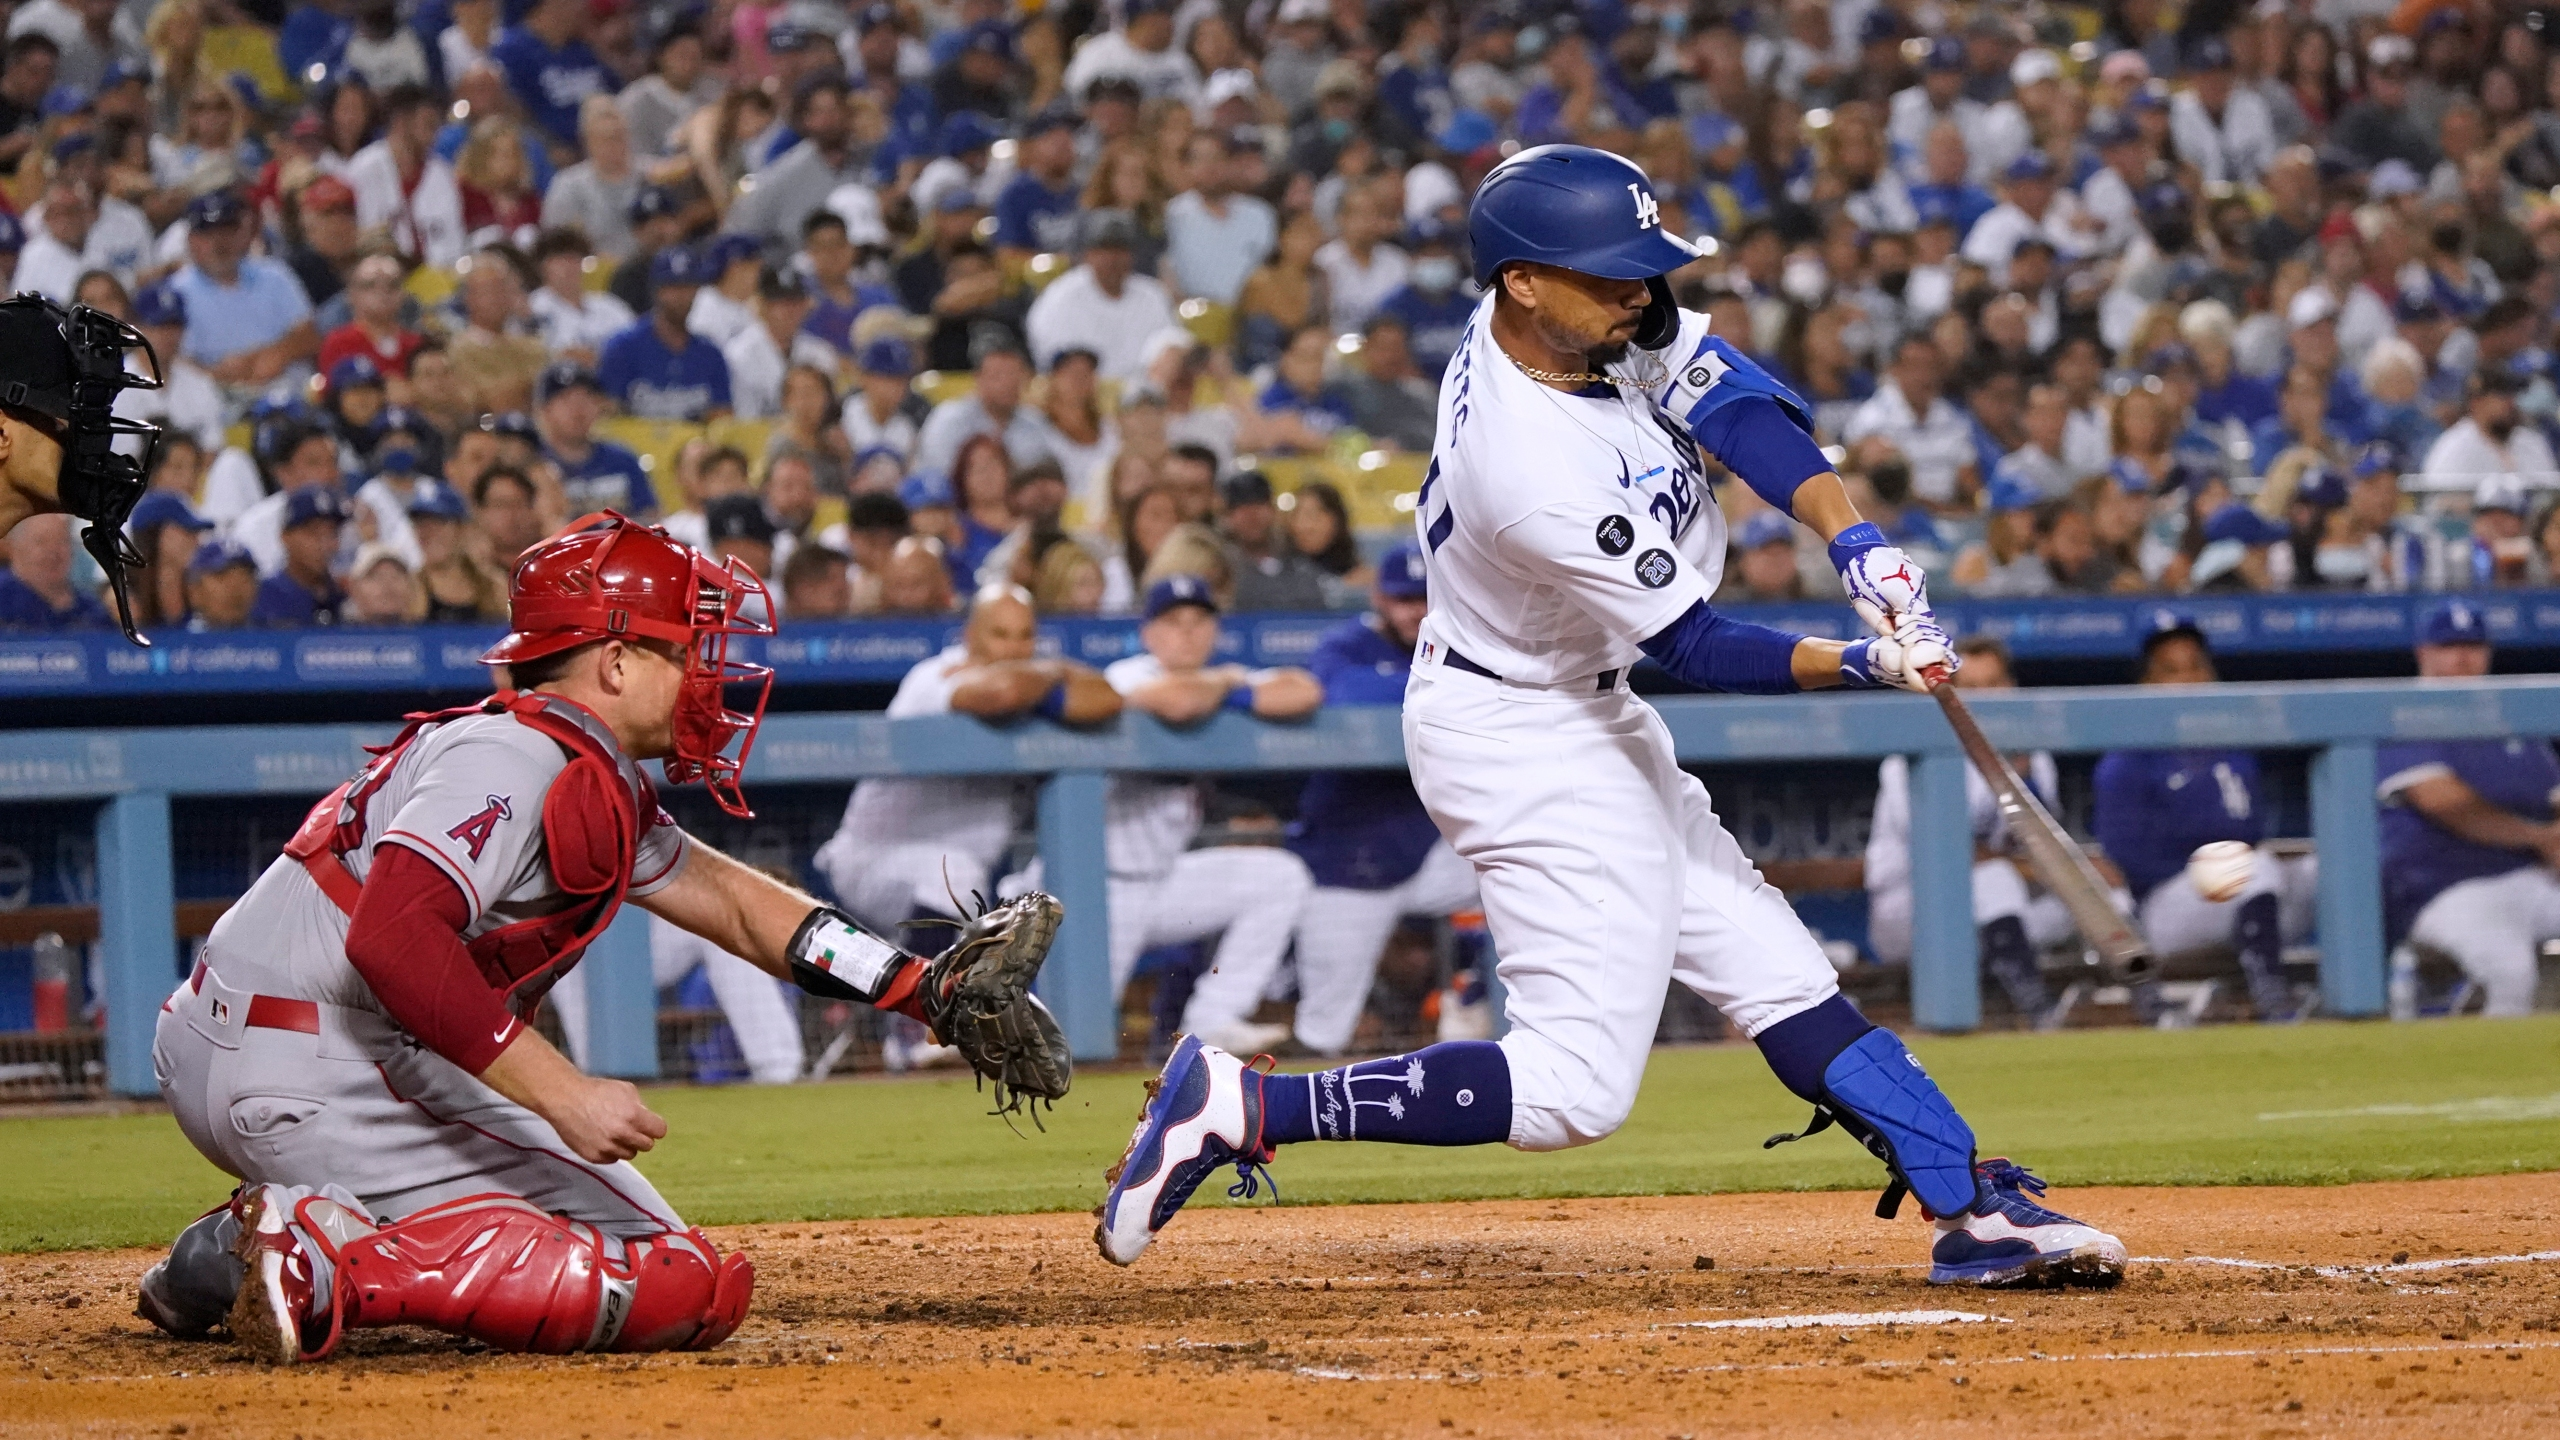 Los Angeles Dodgers' Mookie Betts drives in a run with a single during the fourth inning of the team's baseball game against the Los Angeles Angels on Aug. 6, 2021, in Los Angeles. Betts was taken out of the game with a sore him and was later placed on the injured list. (Marcio Jose Sanchez/Associated Press)